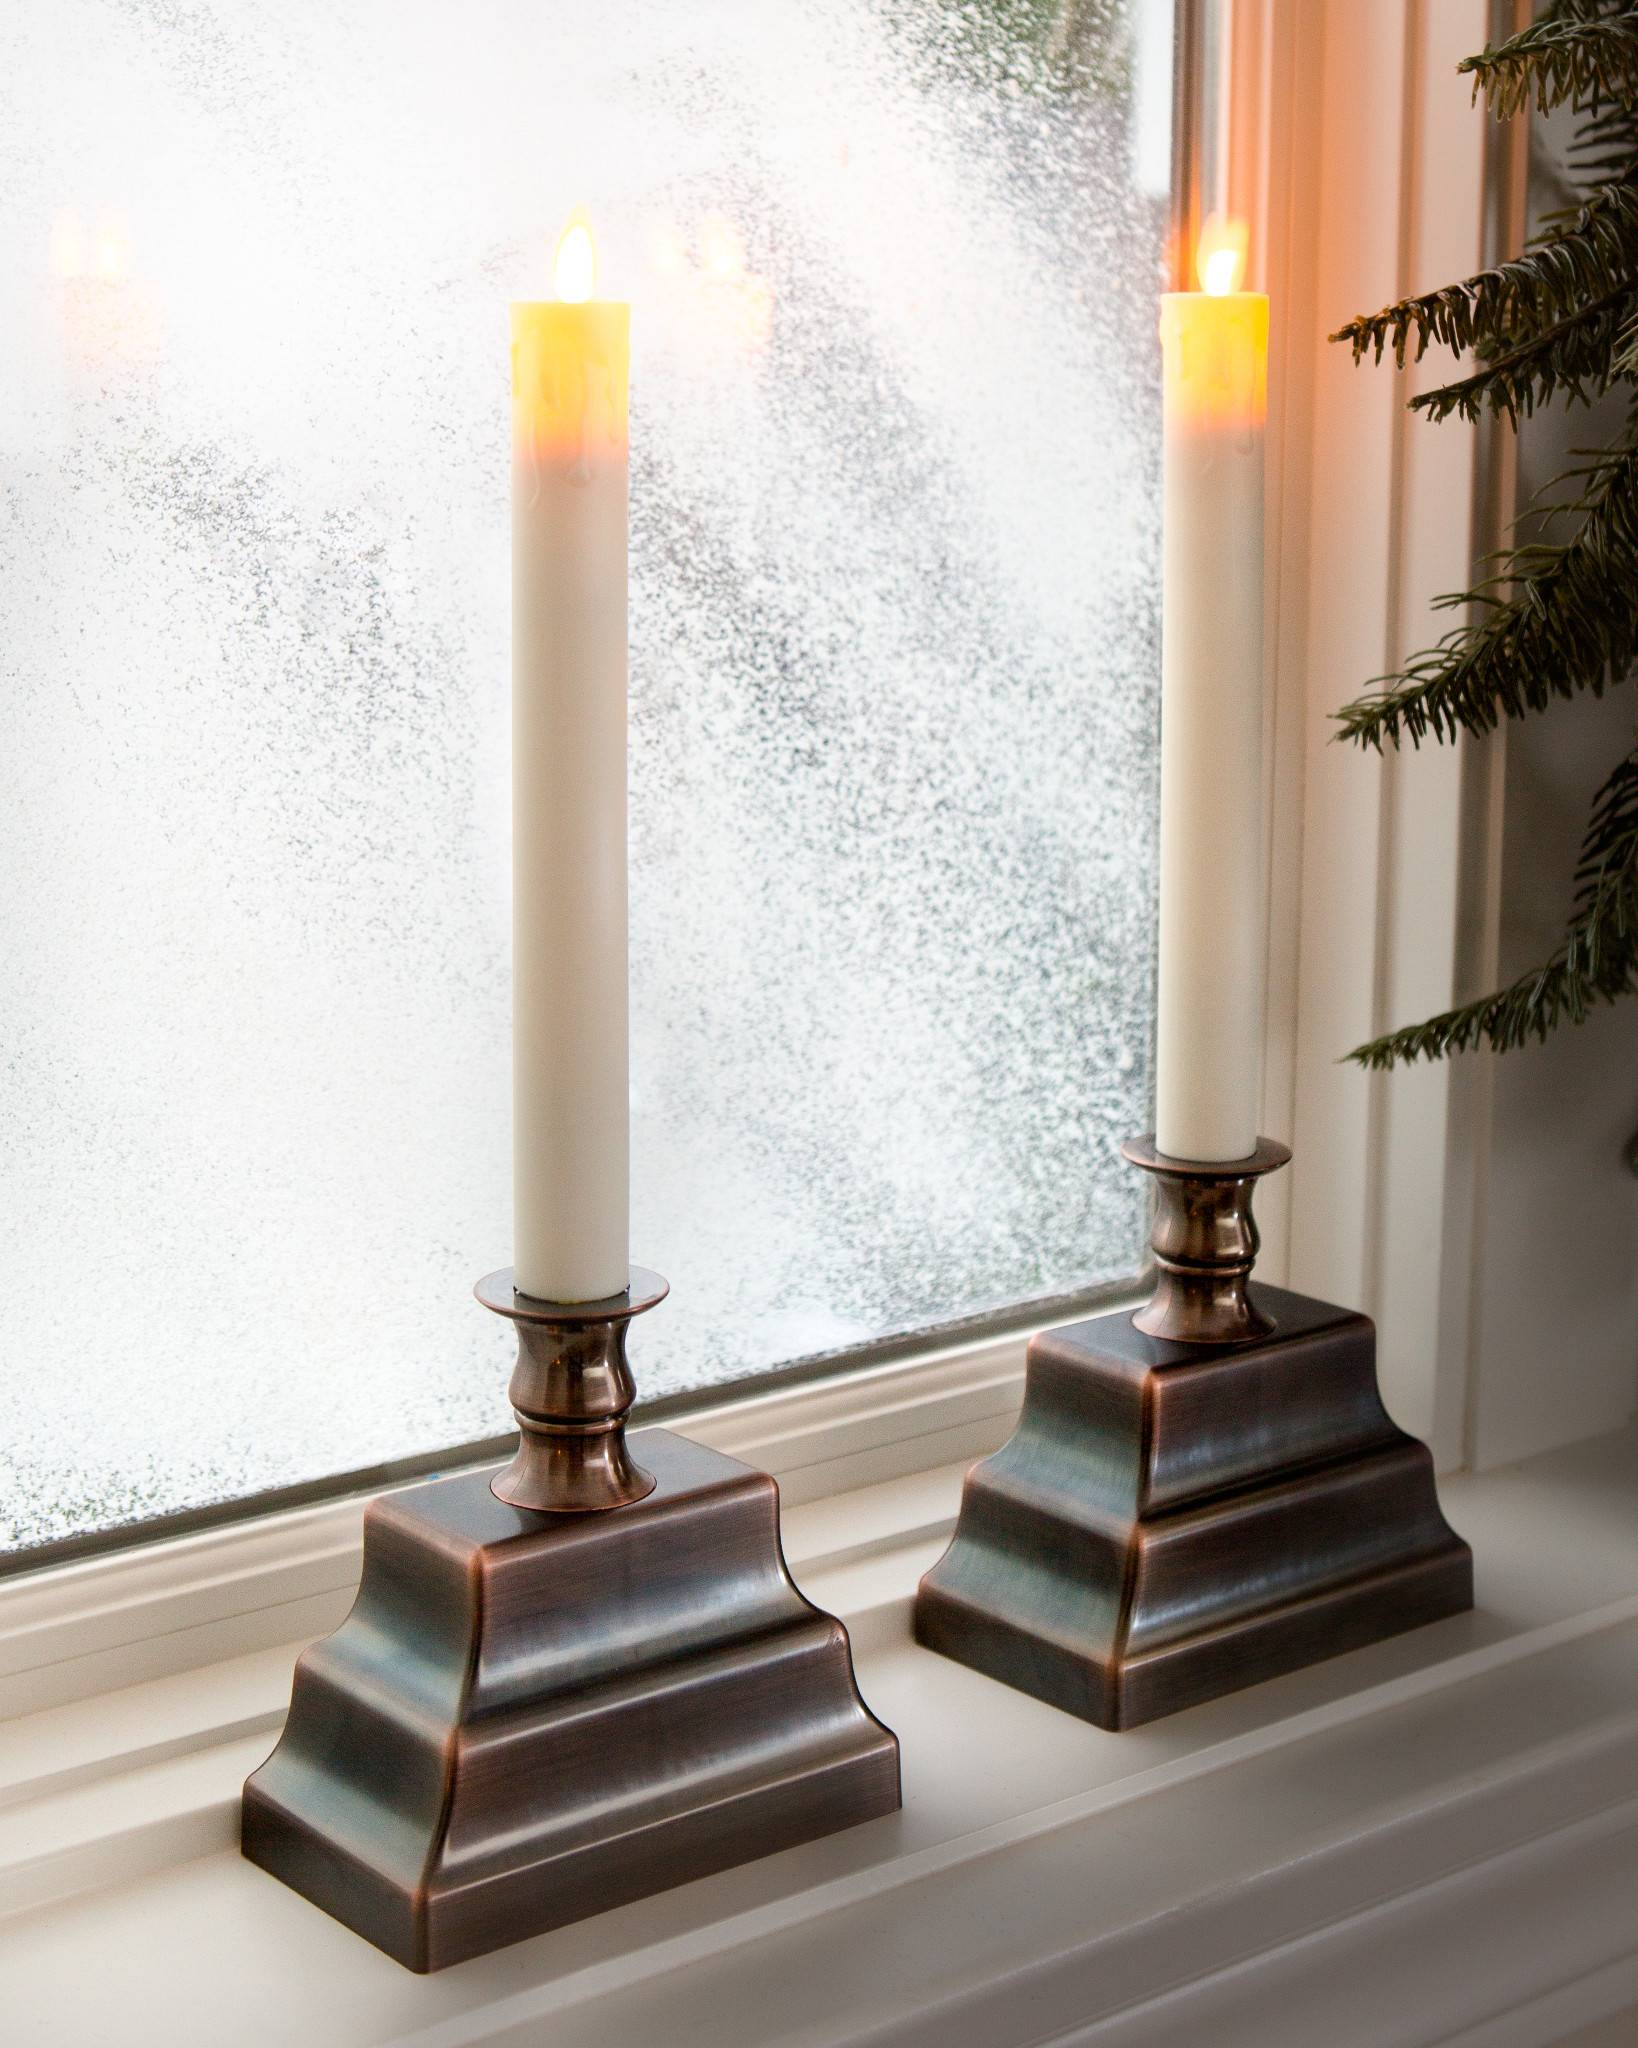 miracle flame led window candles set of 2 balsam hill